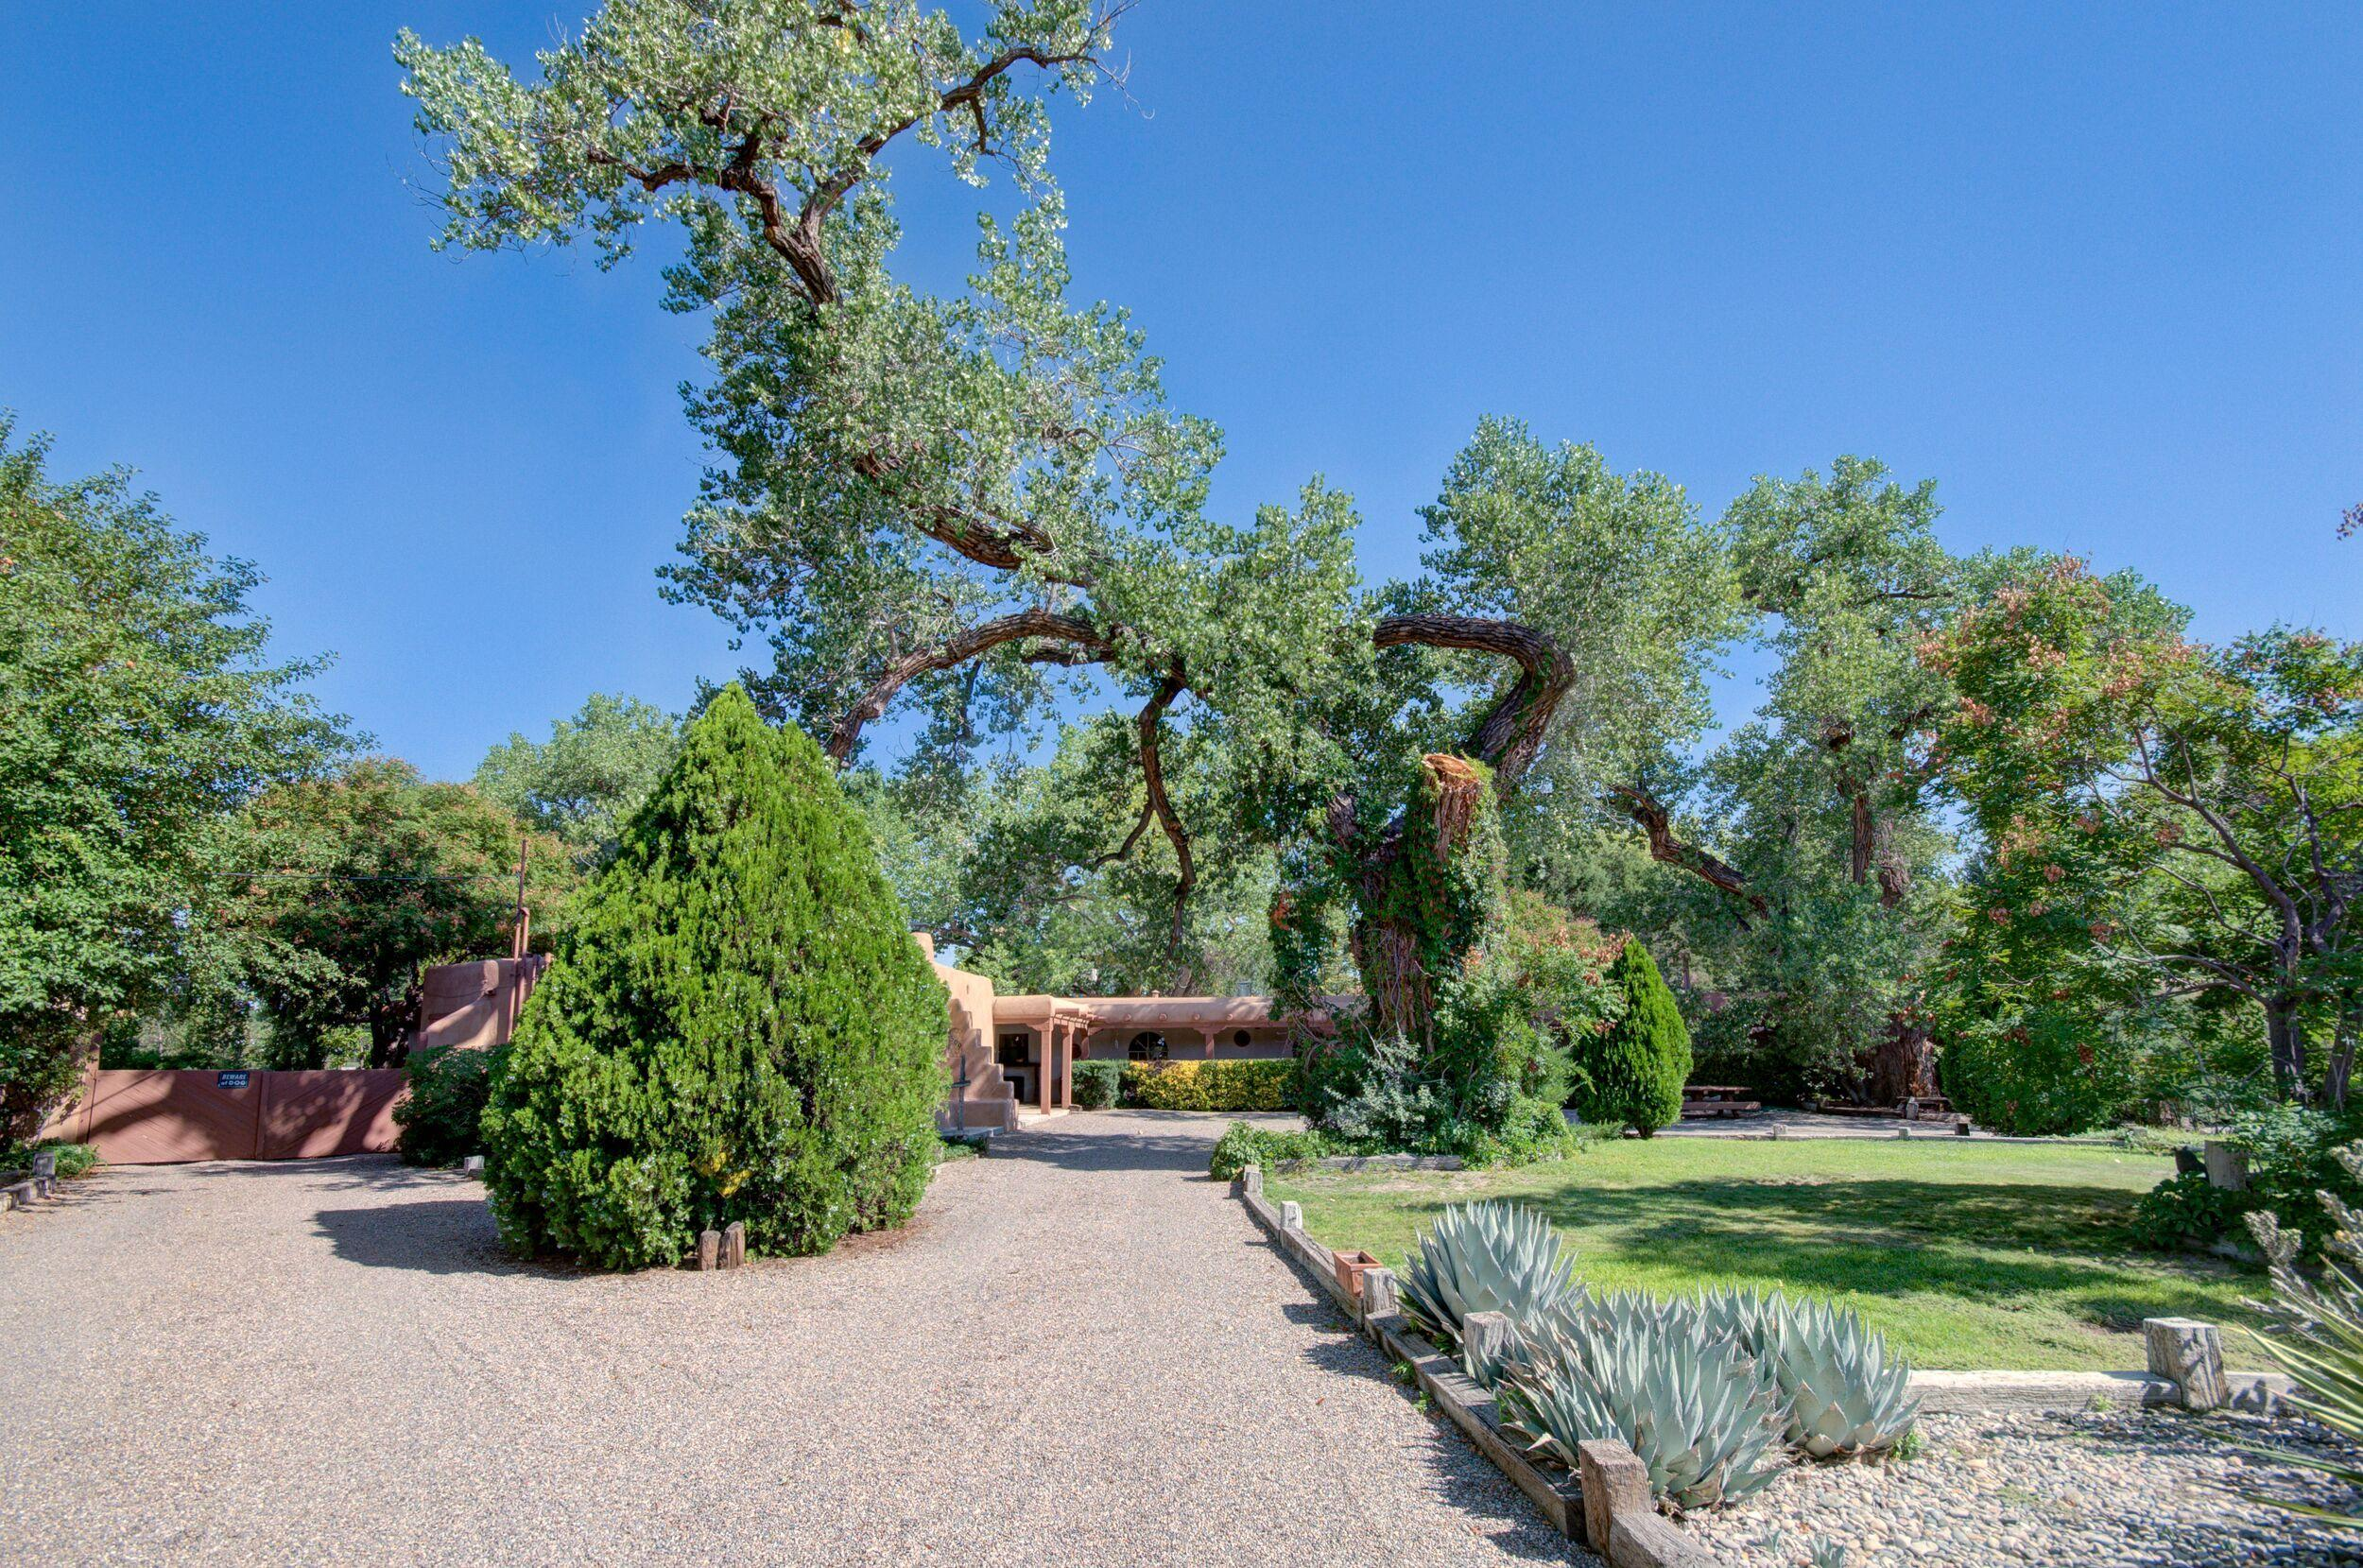 509 LOS RANCHOS Road NW, Los Ranchos, NM 87107 - Los Ranchos, NM real estate listing